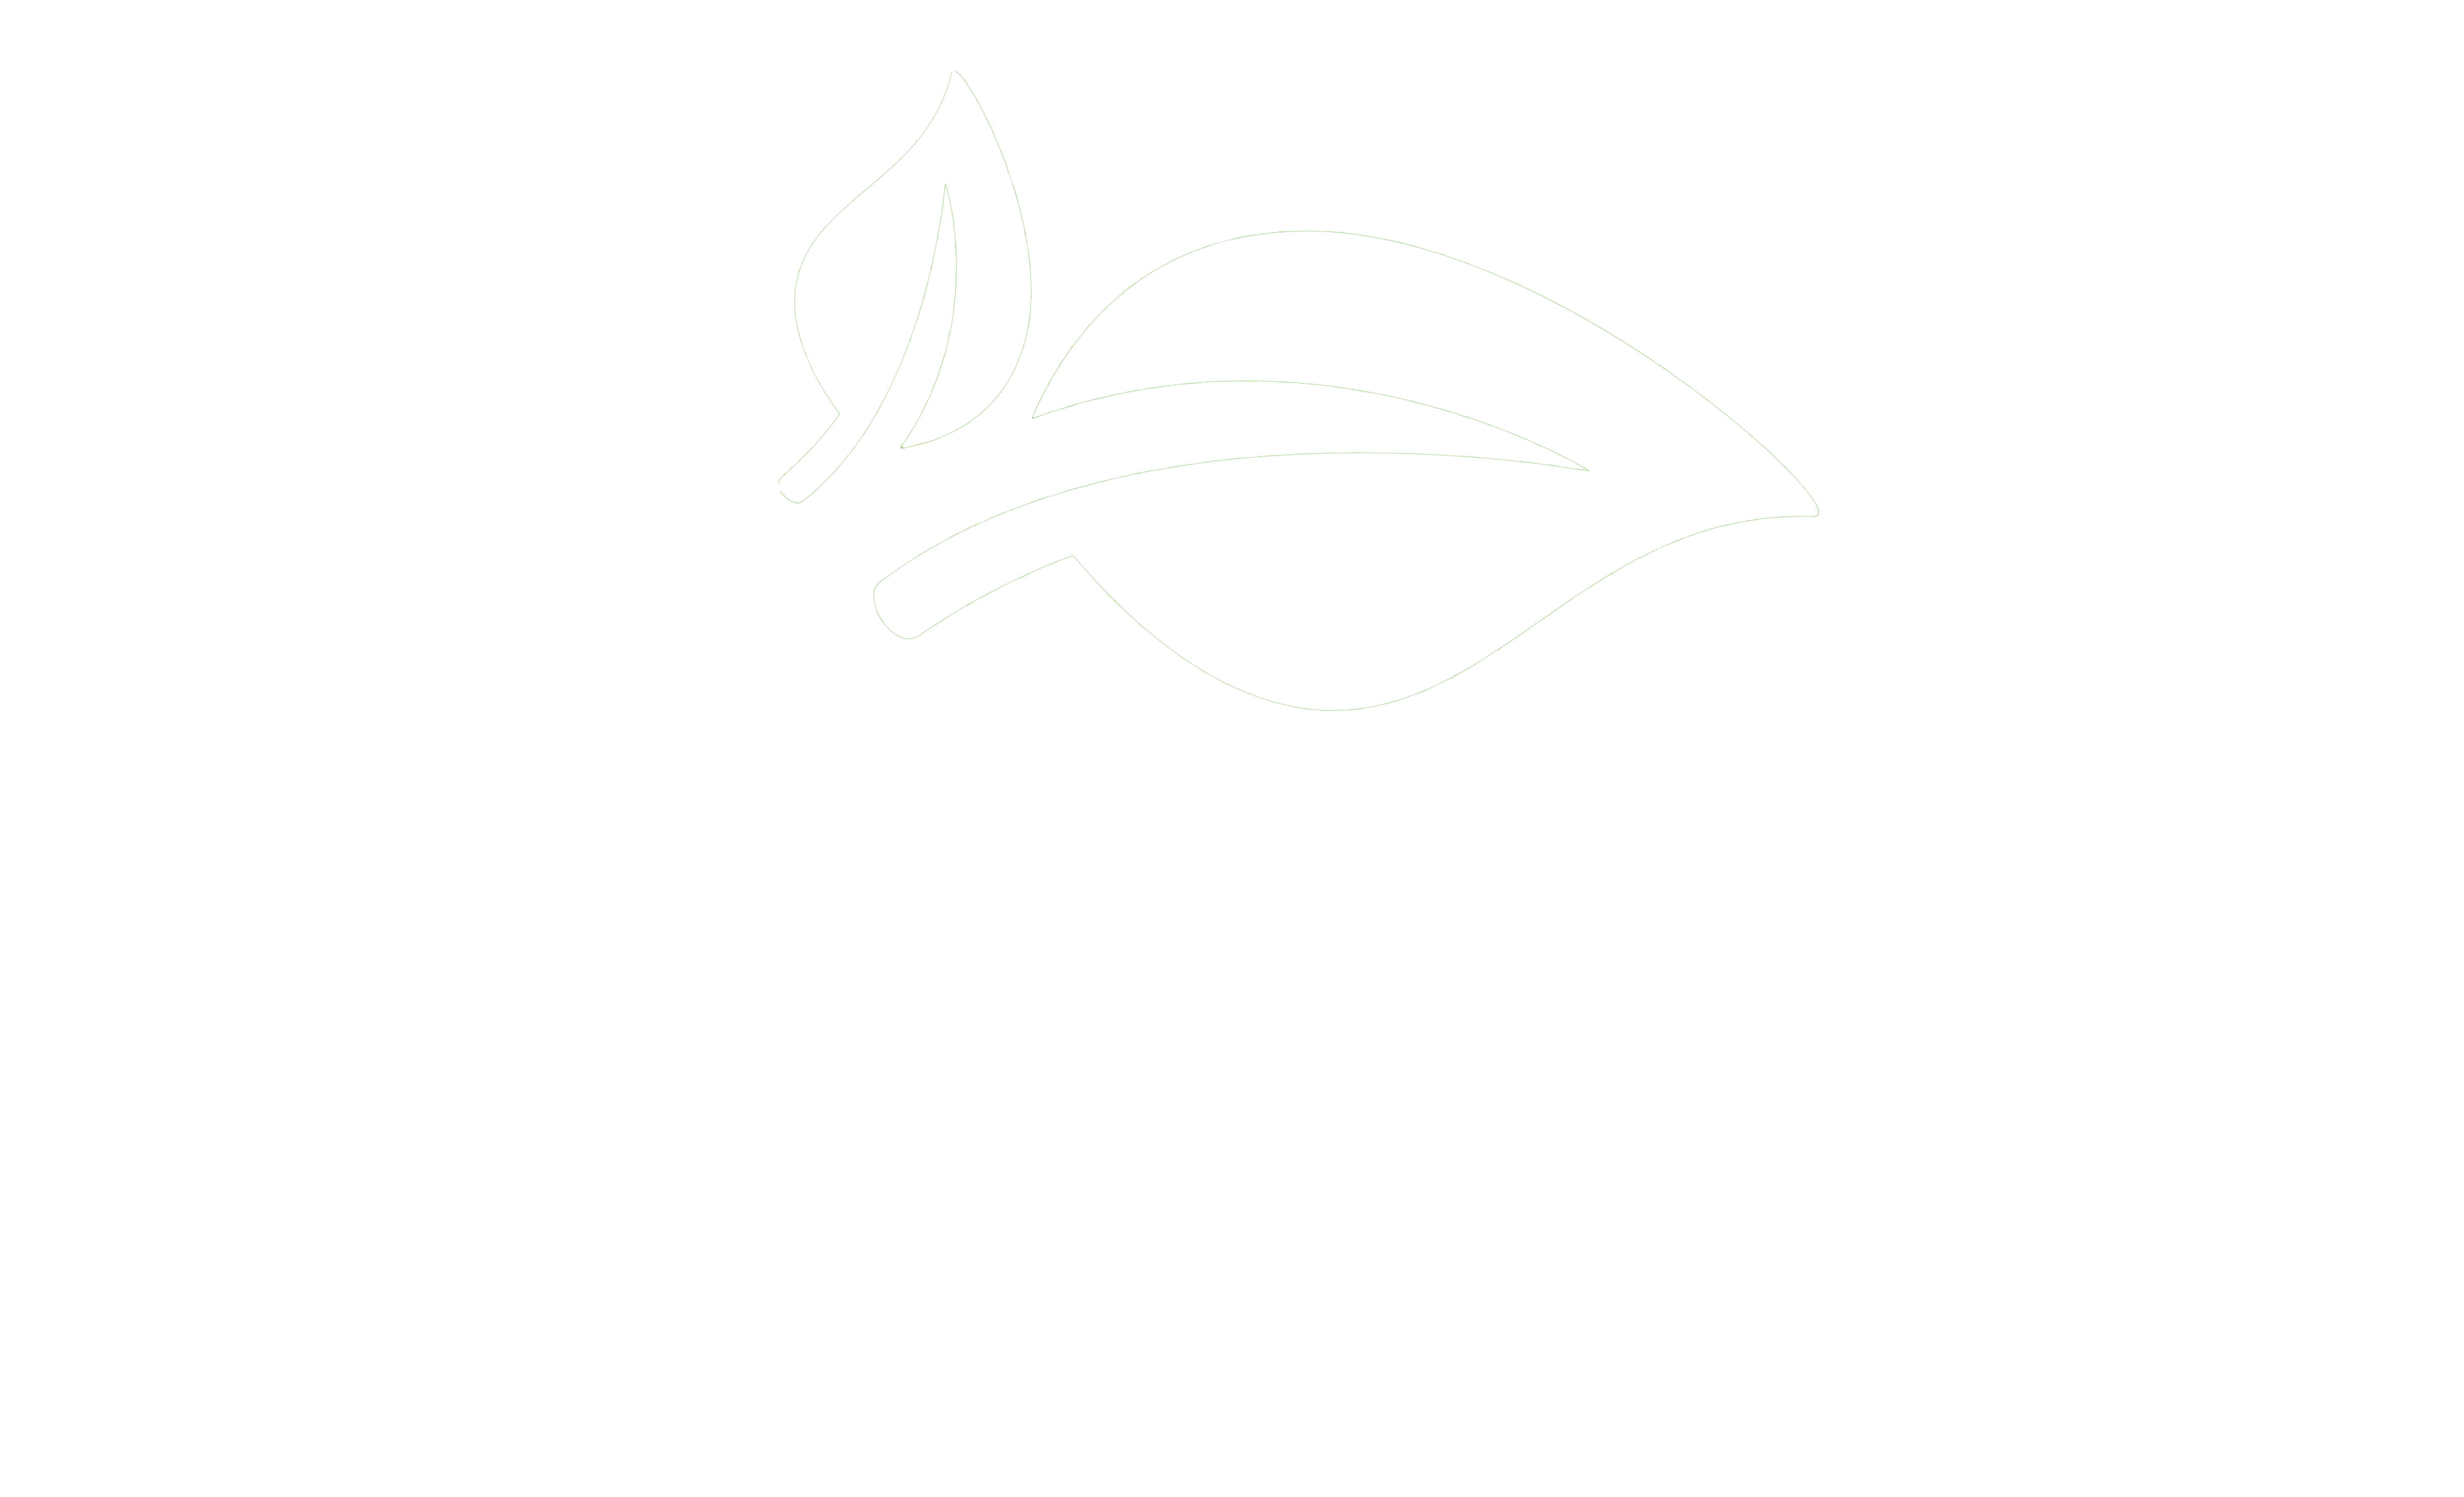 sprout processing cannabis logo